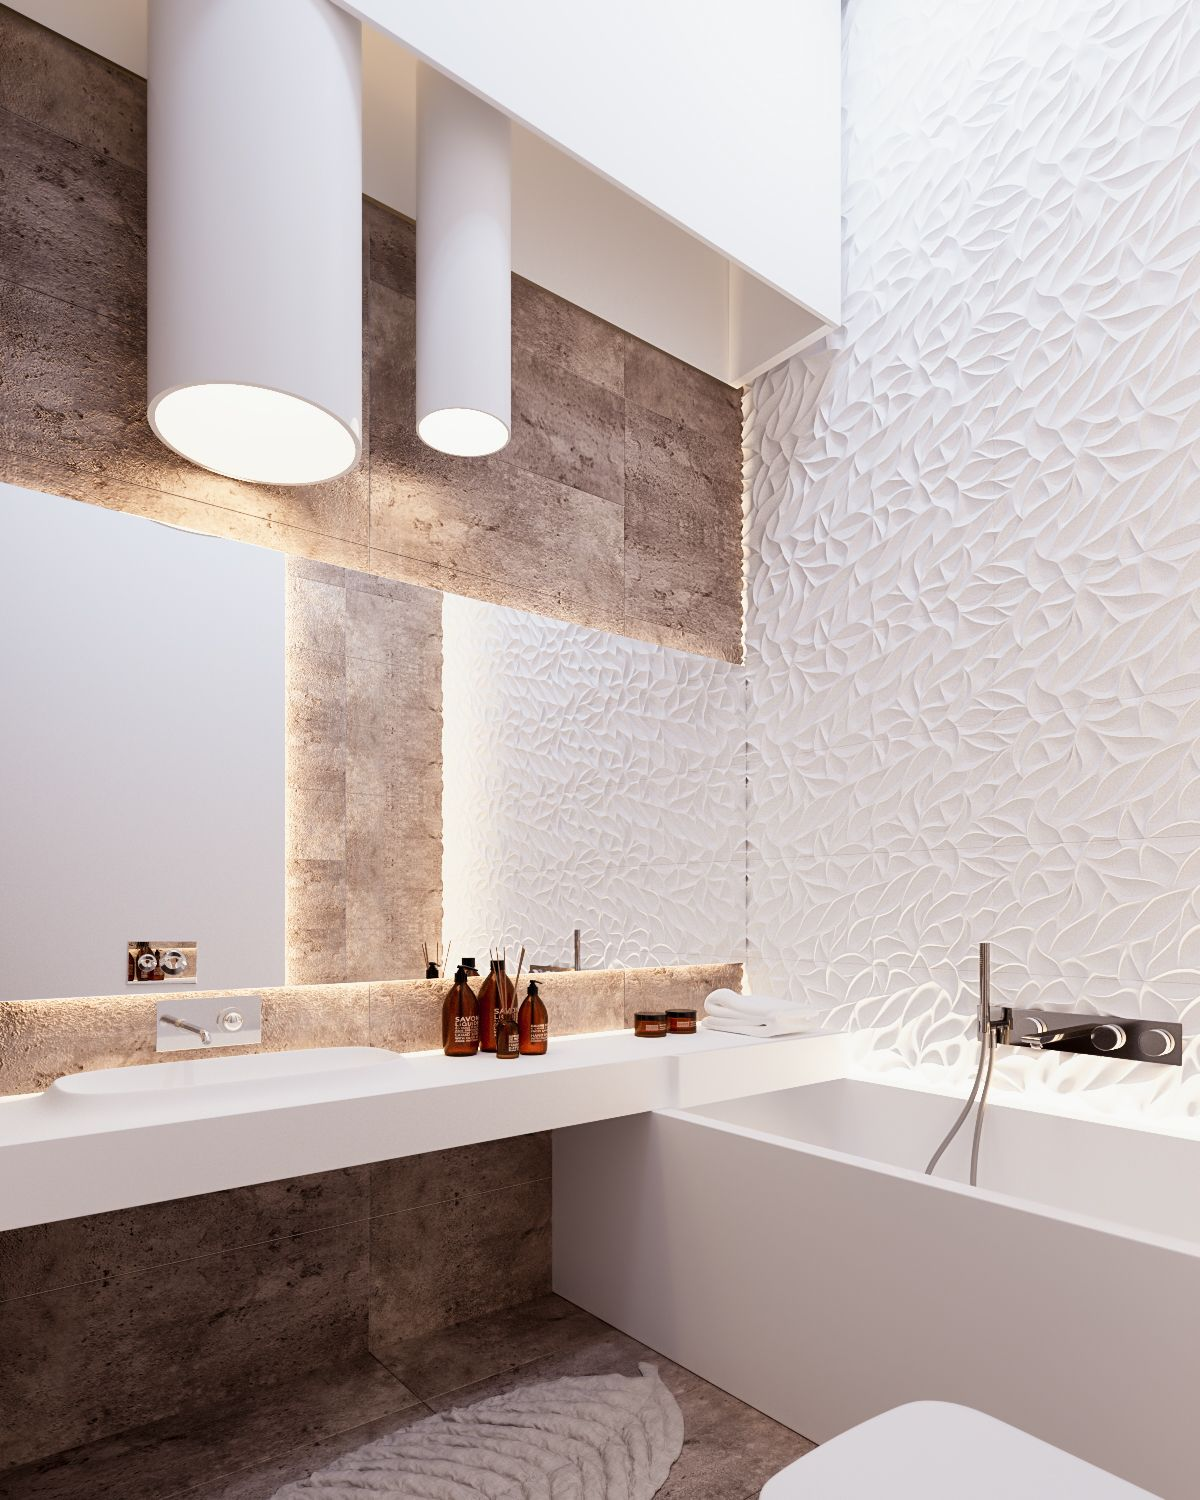 Bathroom Wall Texture Ideas: A Cleverly Decorated Family Home In Ukraine.... : Interior